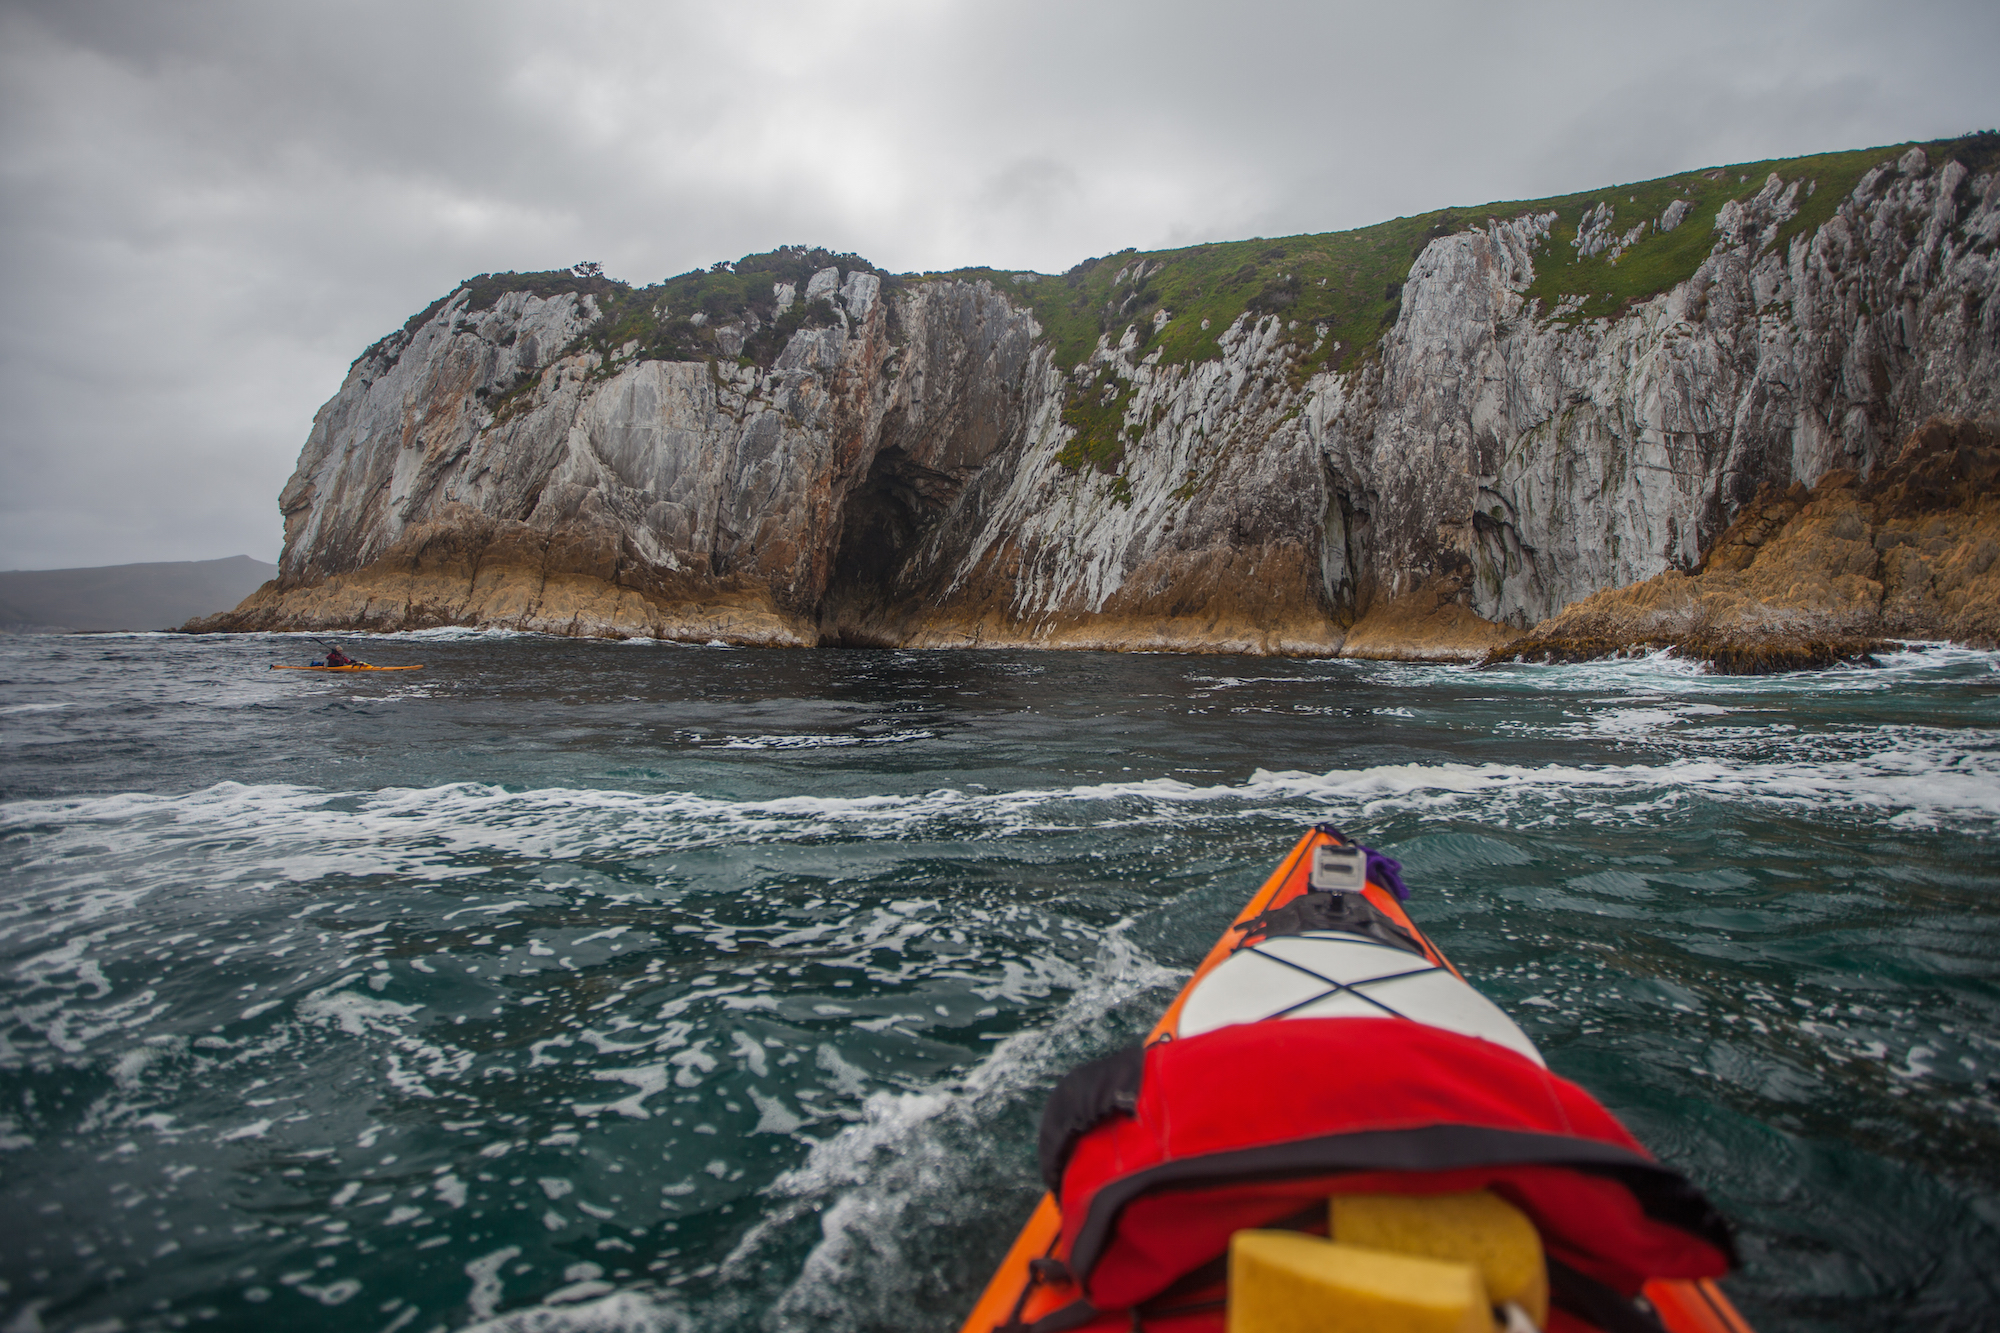 Kayaking the Breaksea Island, Southwest Tasmania